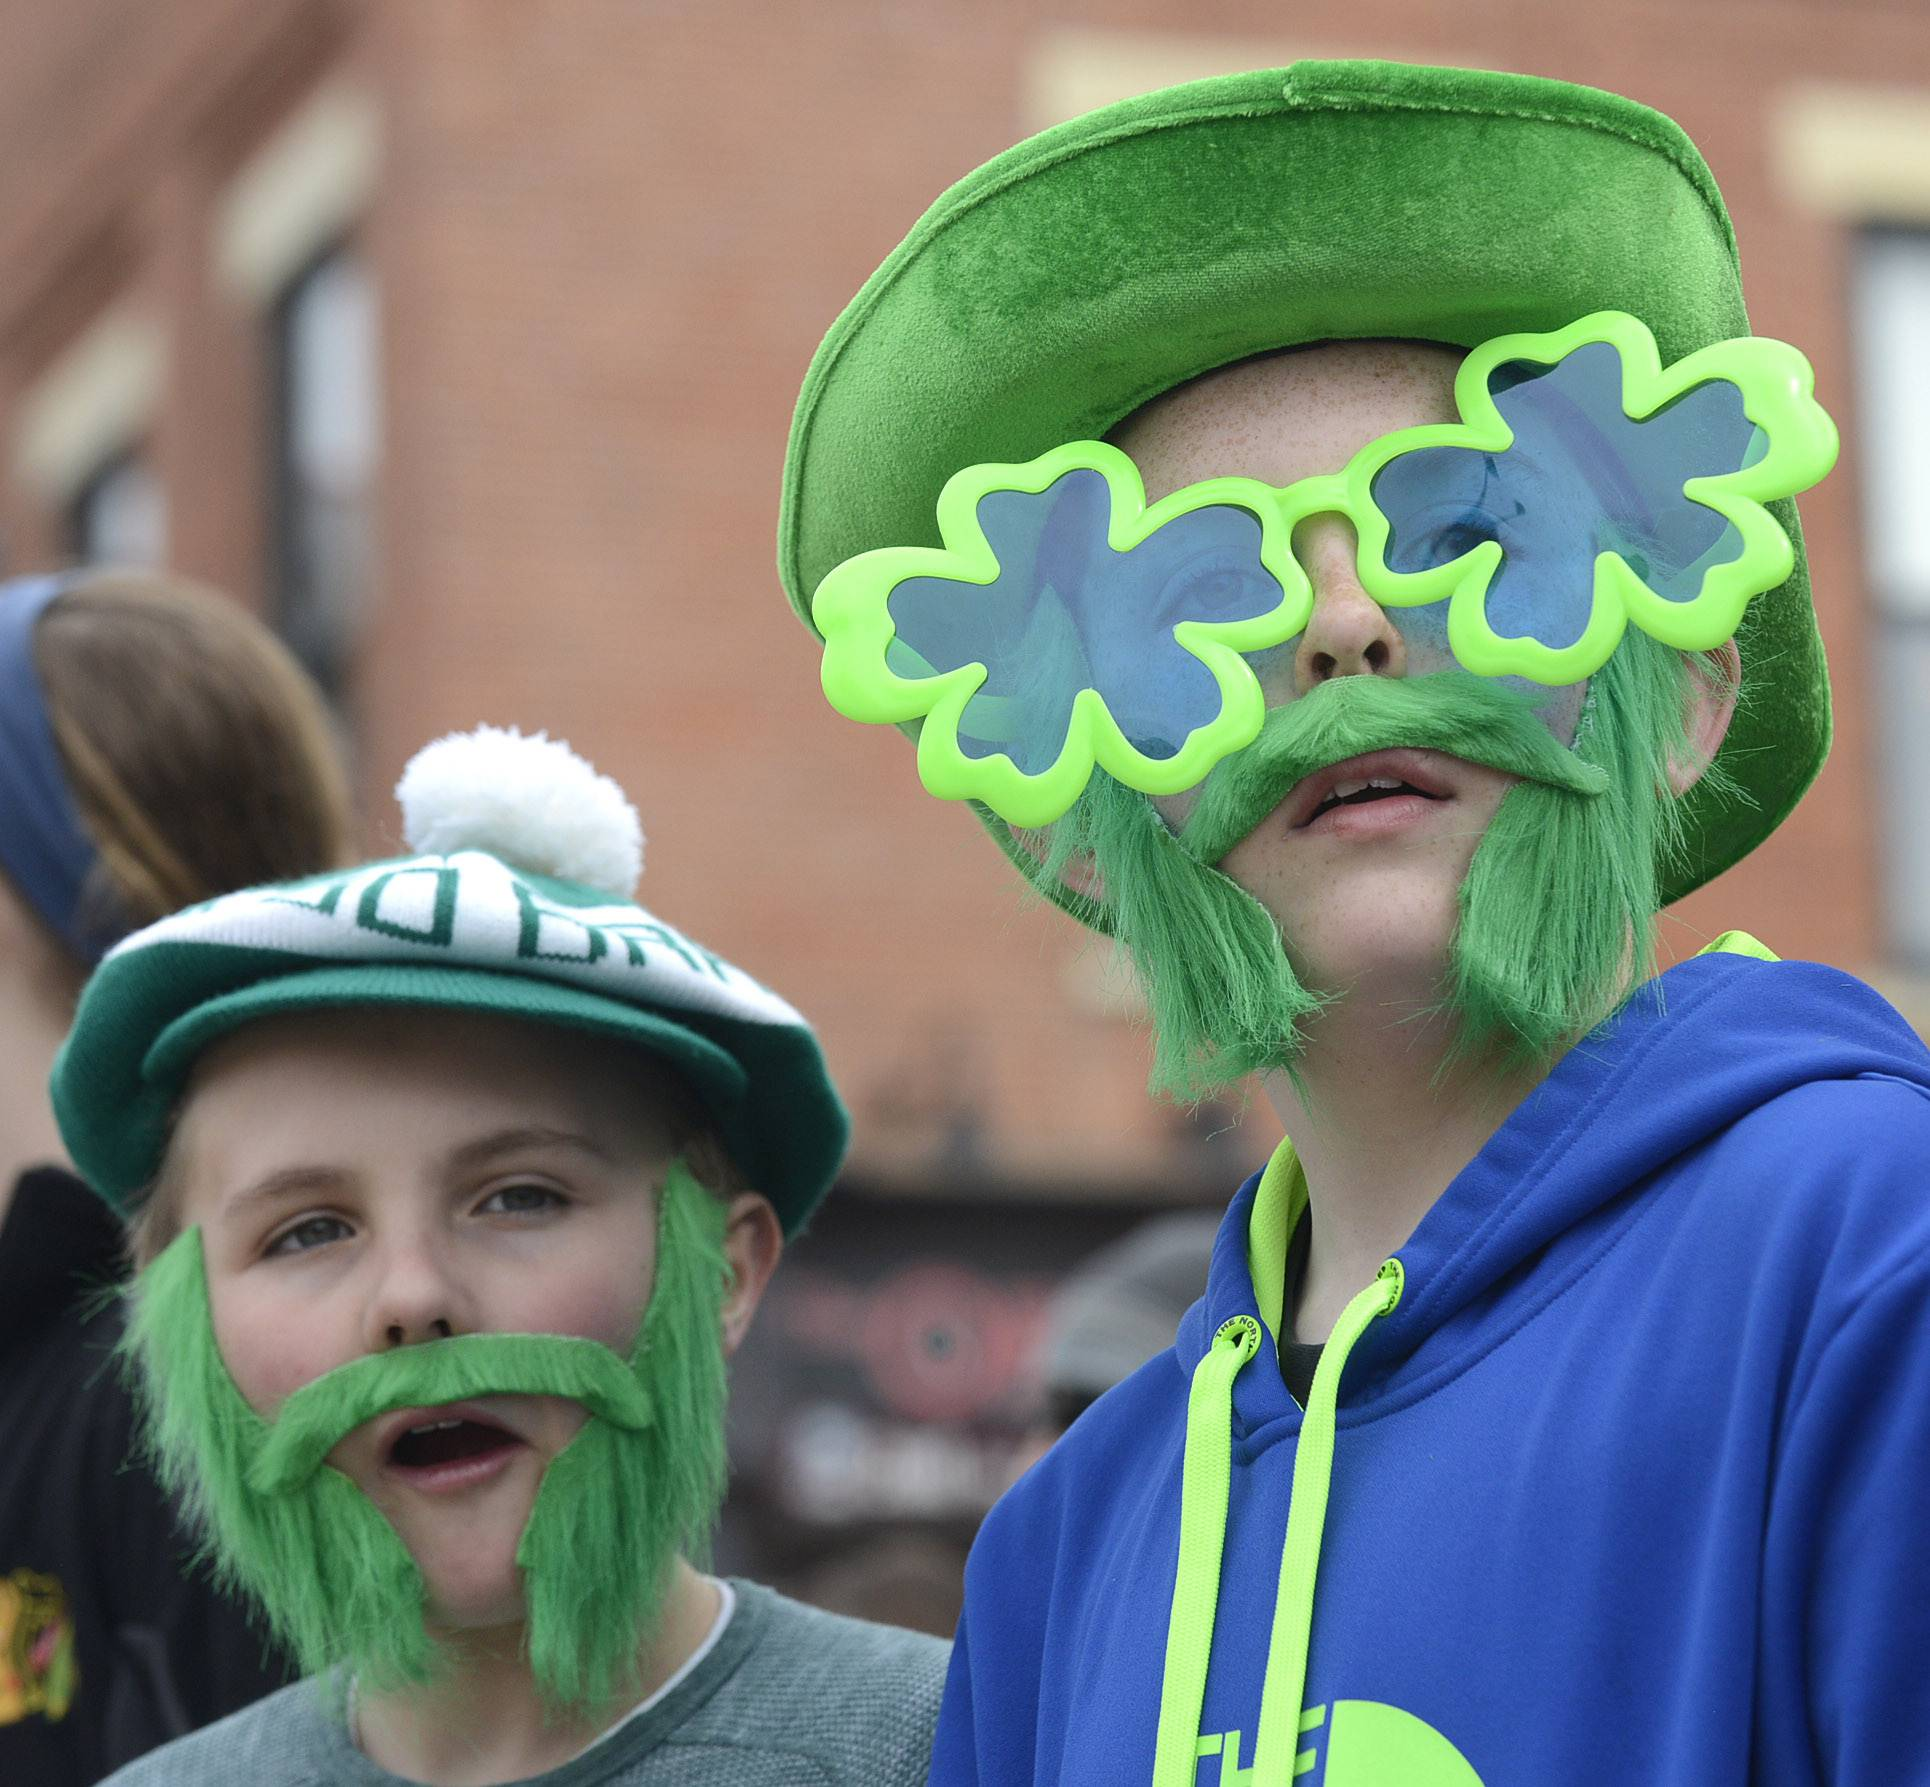 "Collin Goode, 11, left, and Sean O'Connor, 10, best friends from St. Charles watch the St. Patrick's Day parade in St. Charles Saturday. The duo, who say they do everything together, come every year to the parade. ""We really enjoy being Irish,"" said Collin with a smile."